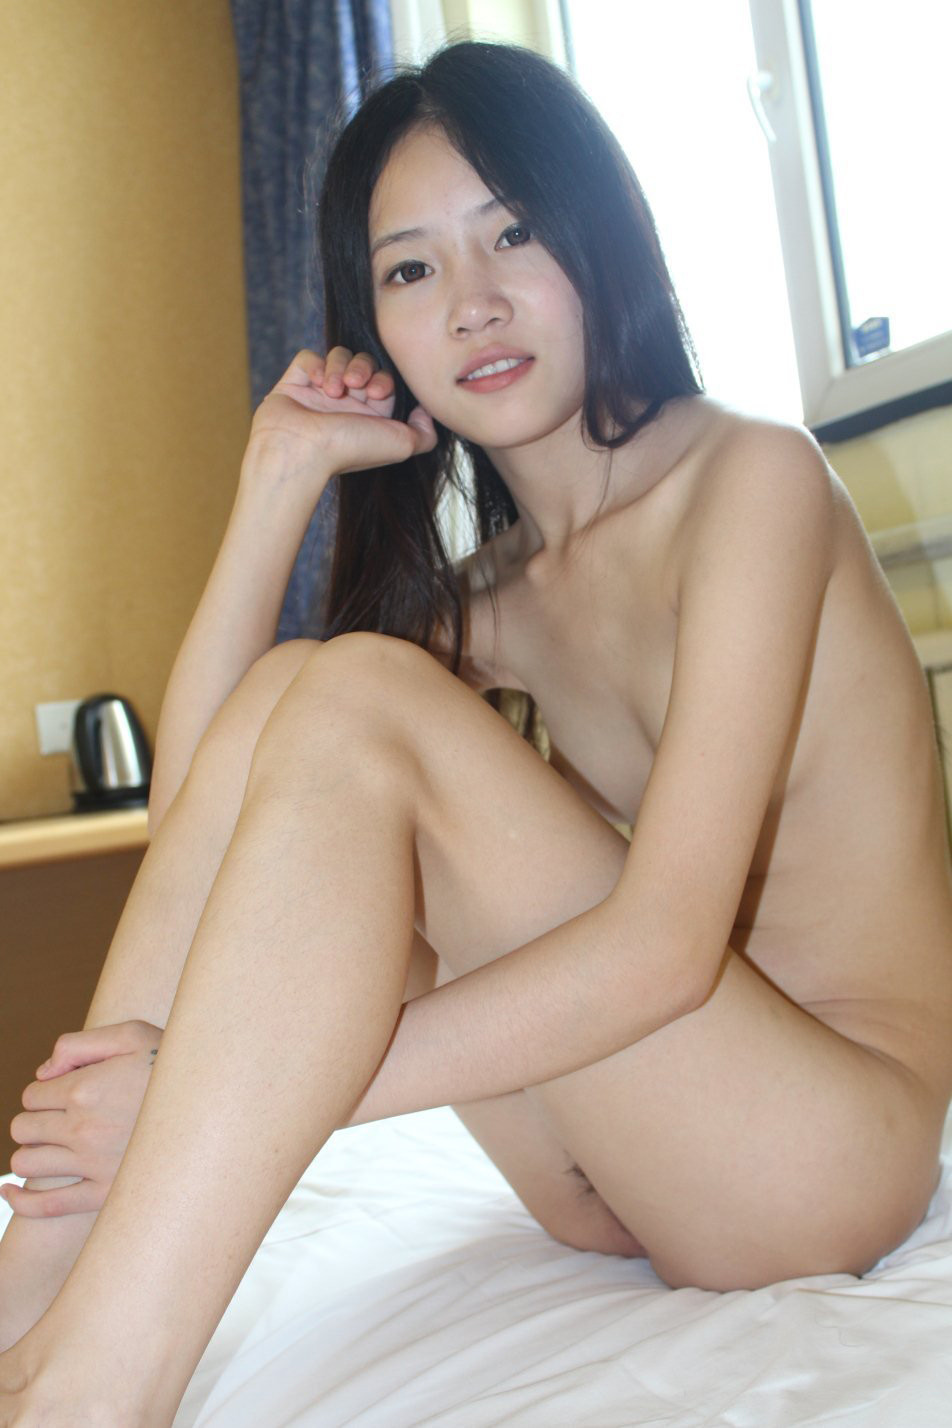 naked pictures girls Chinese